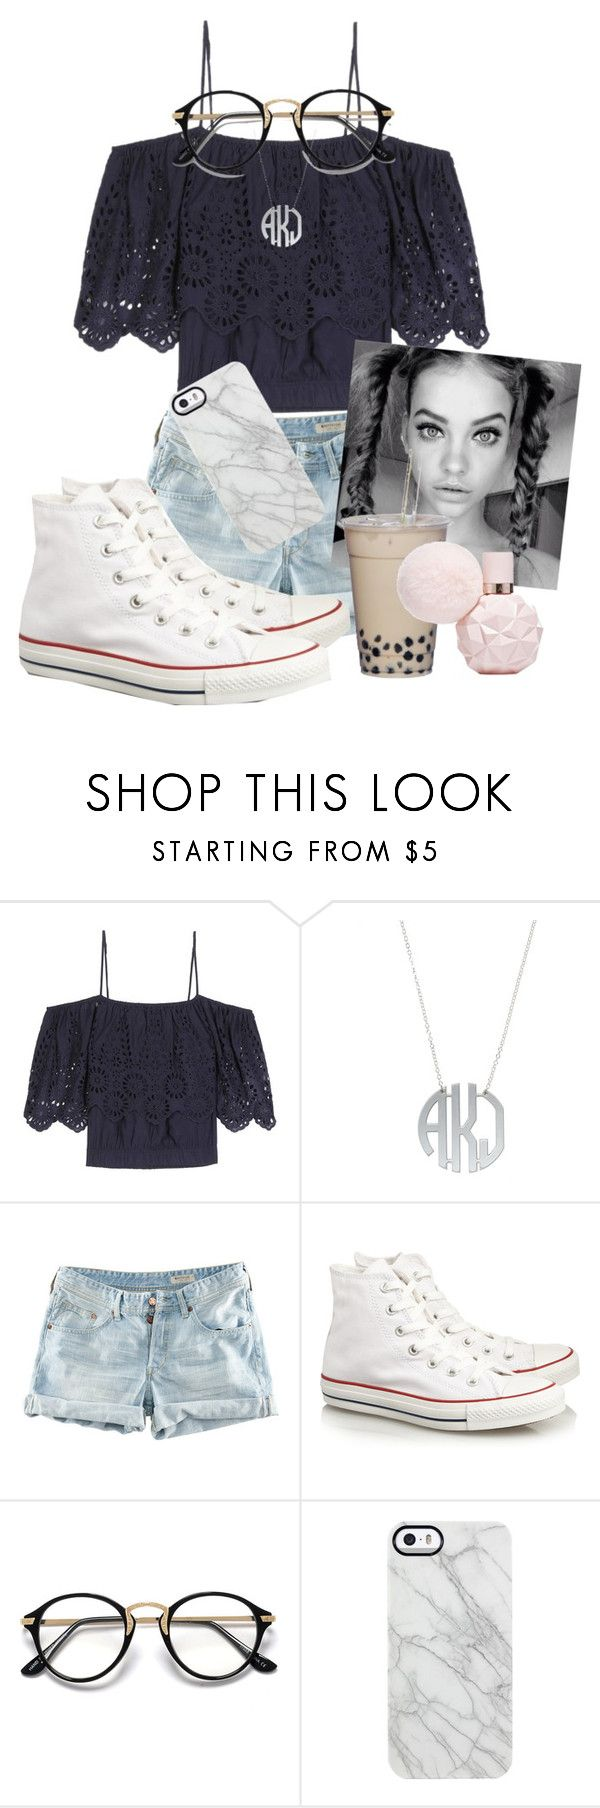 """""""Basketball games today 🏀"""" by maris3456 ❤ liked on Polyvore featuring Ganni, H&M, Converse, Uncommon, basketball, converse, blouse, glasses and arianagrandeperfume"""